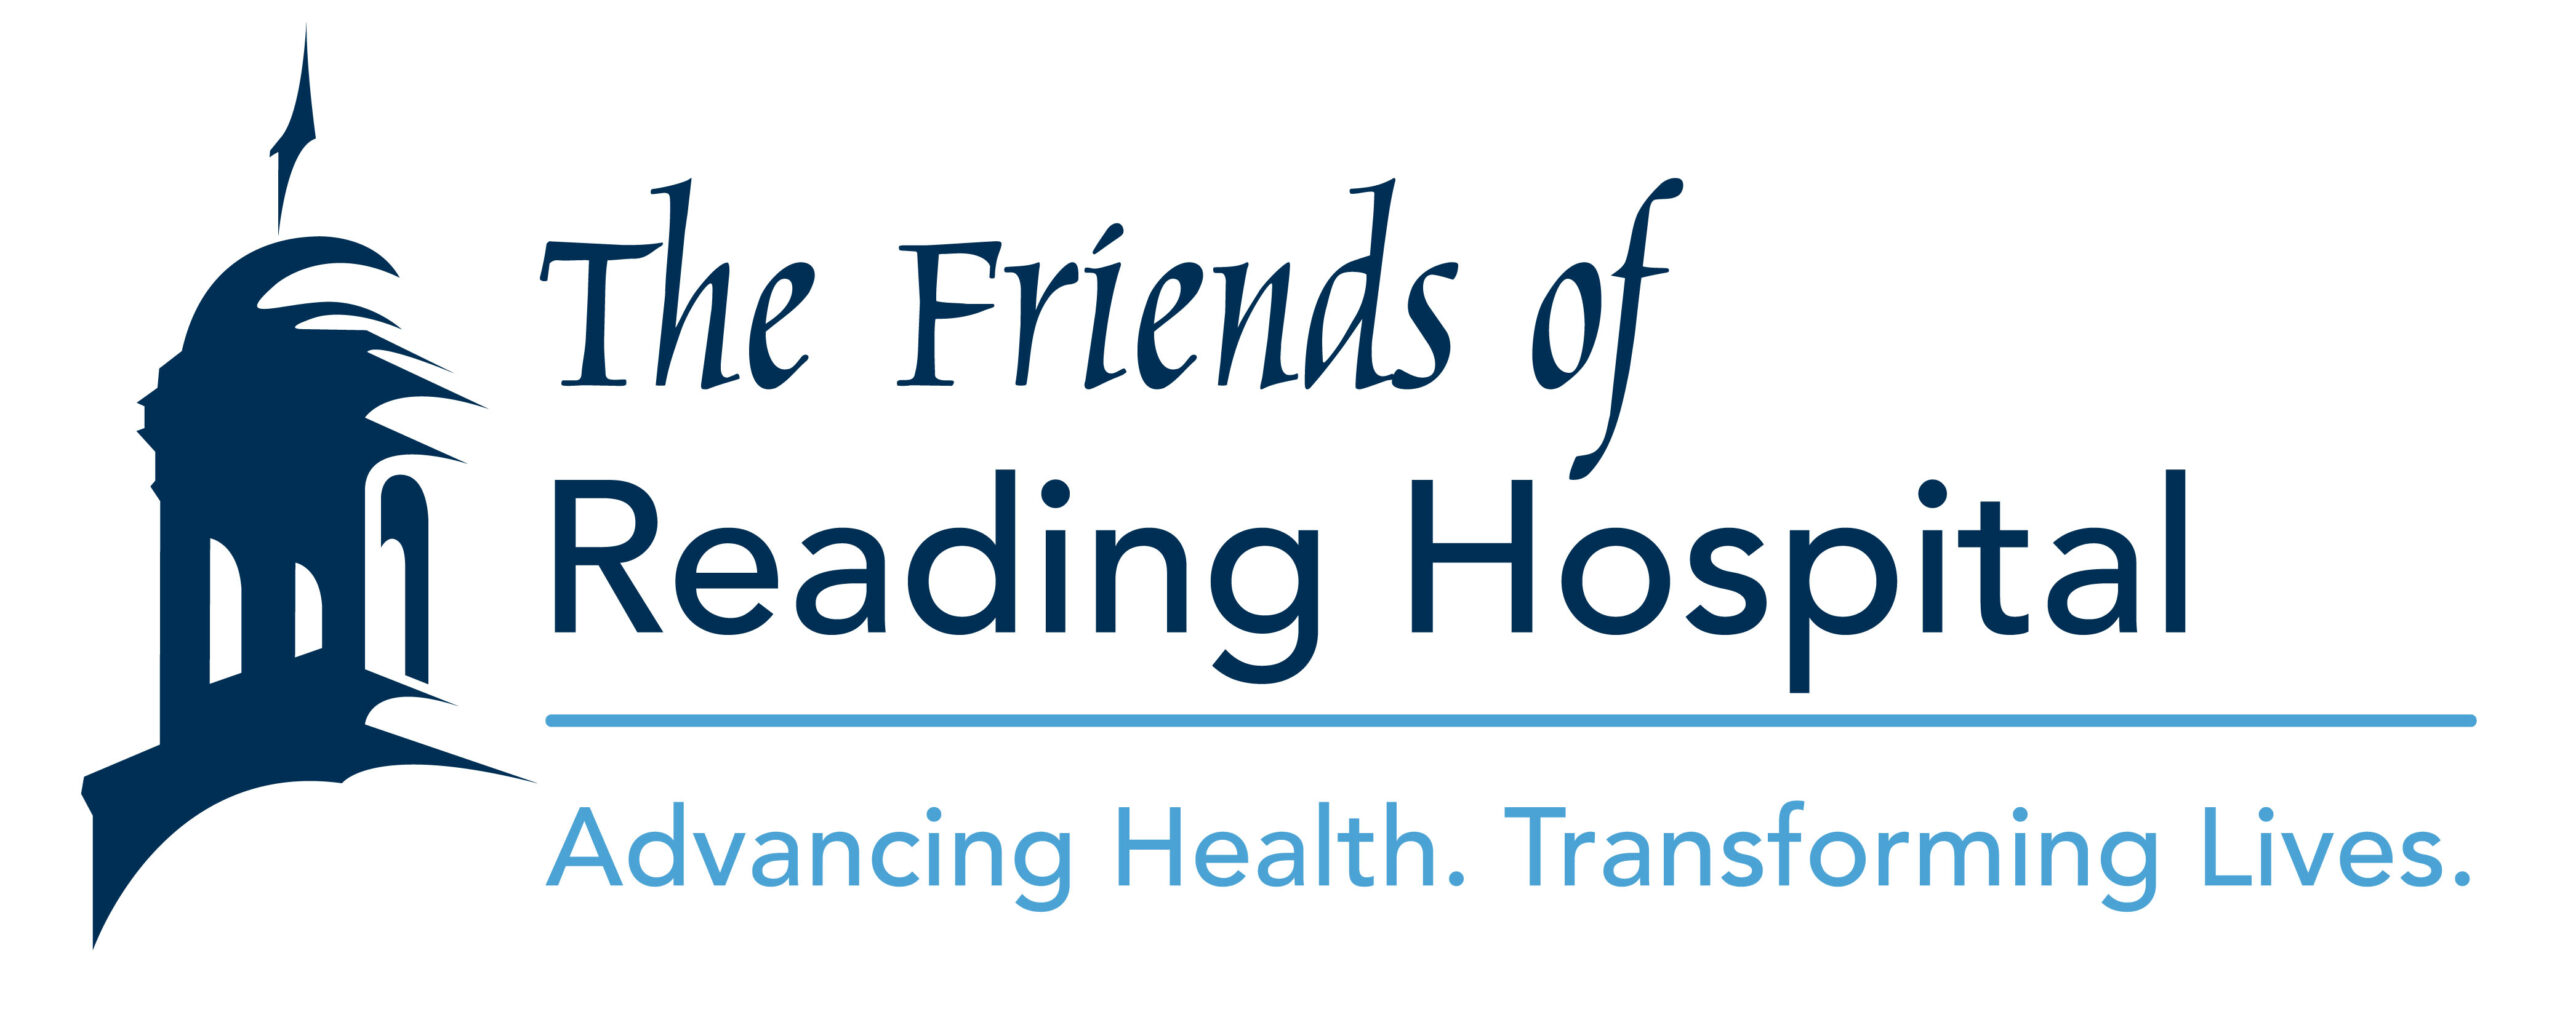 The Friends of Reading Hospital